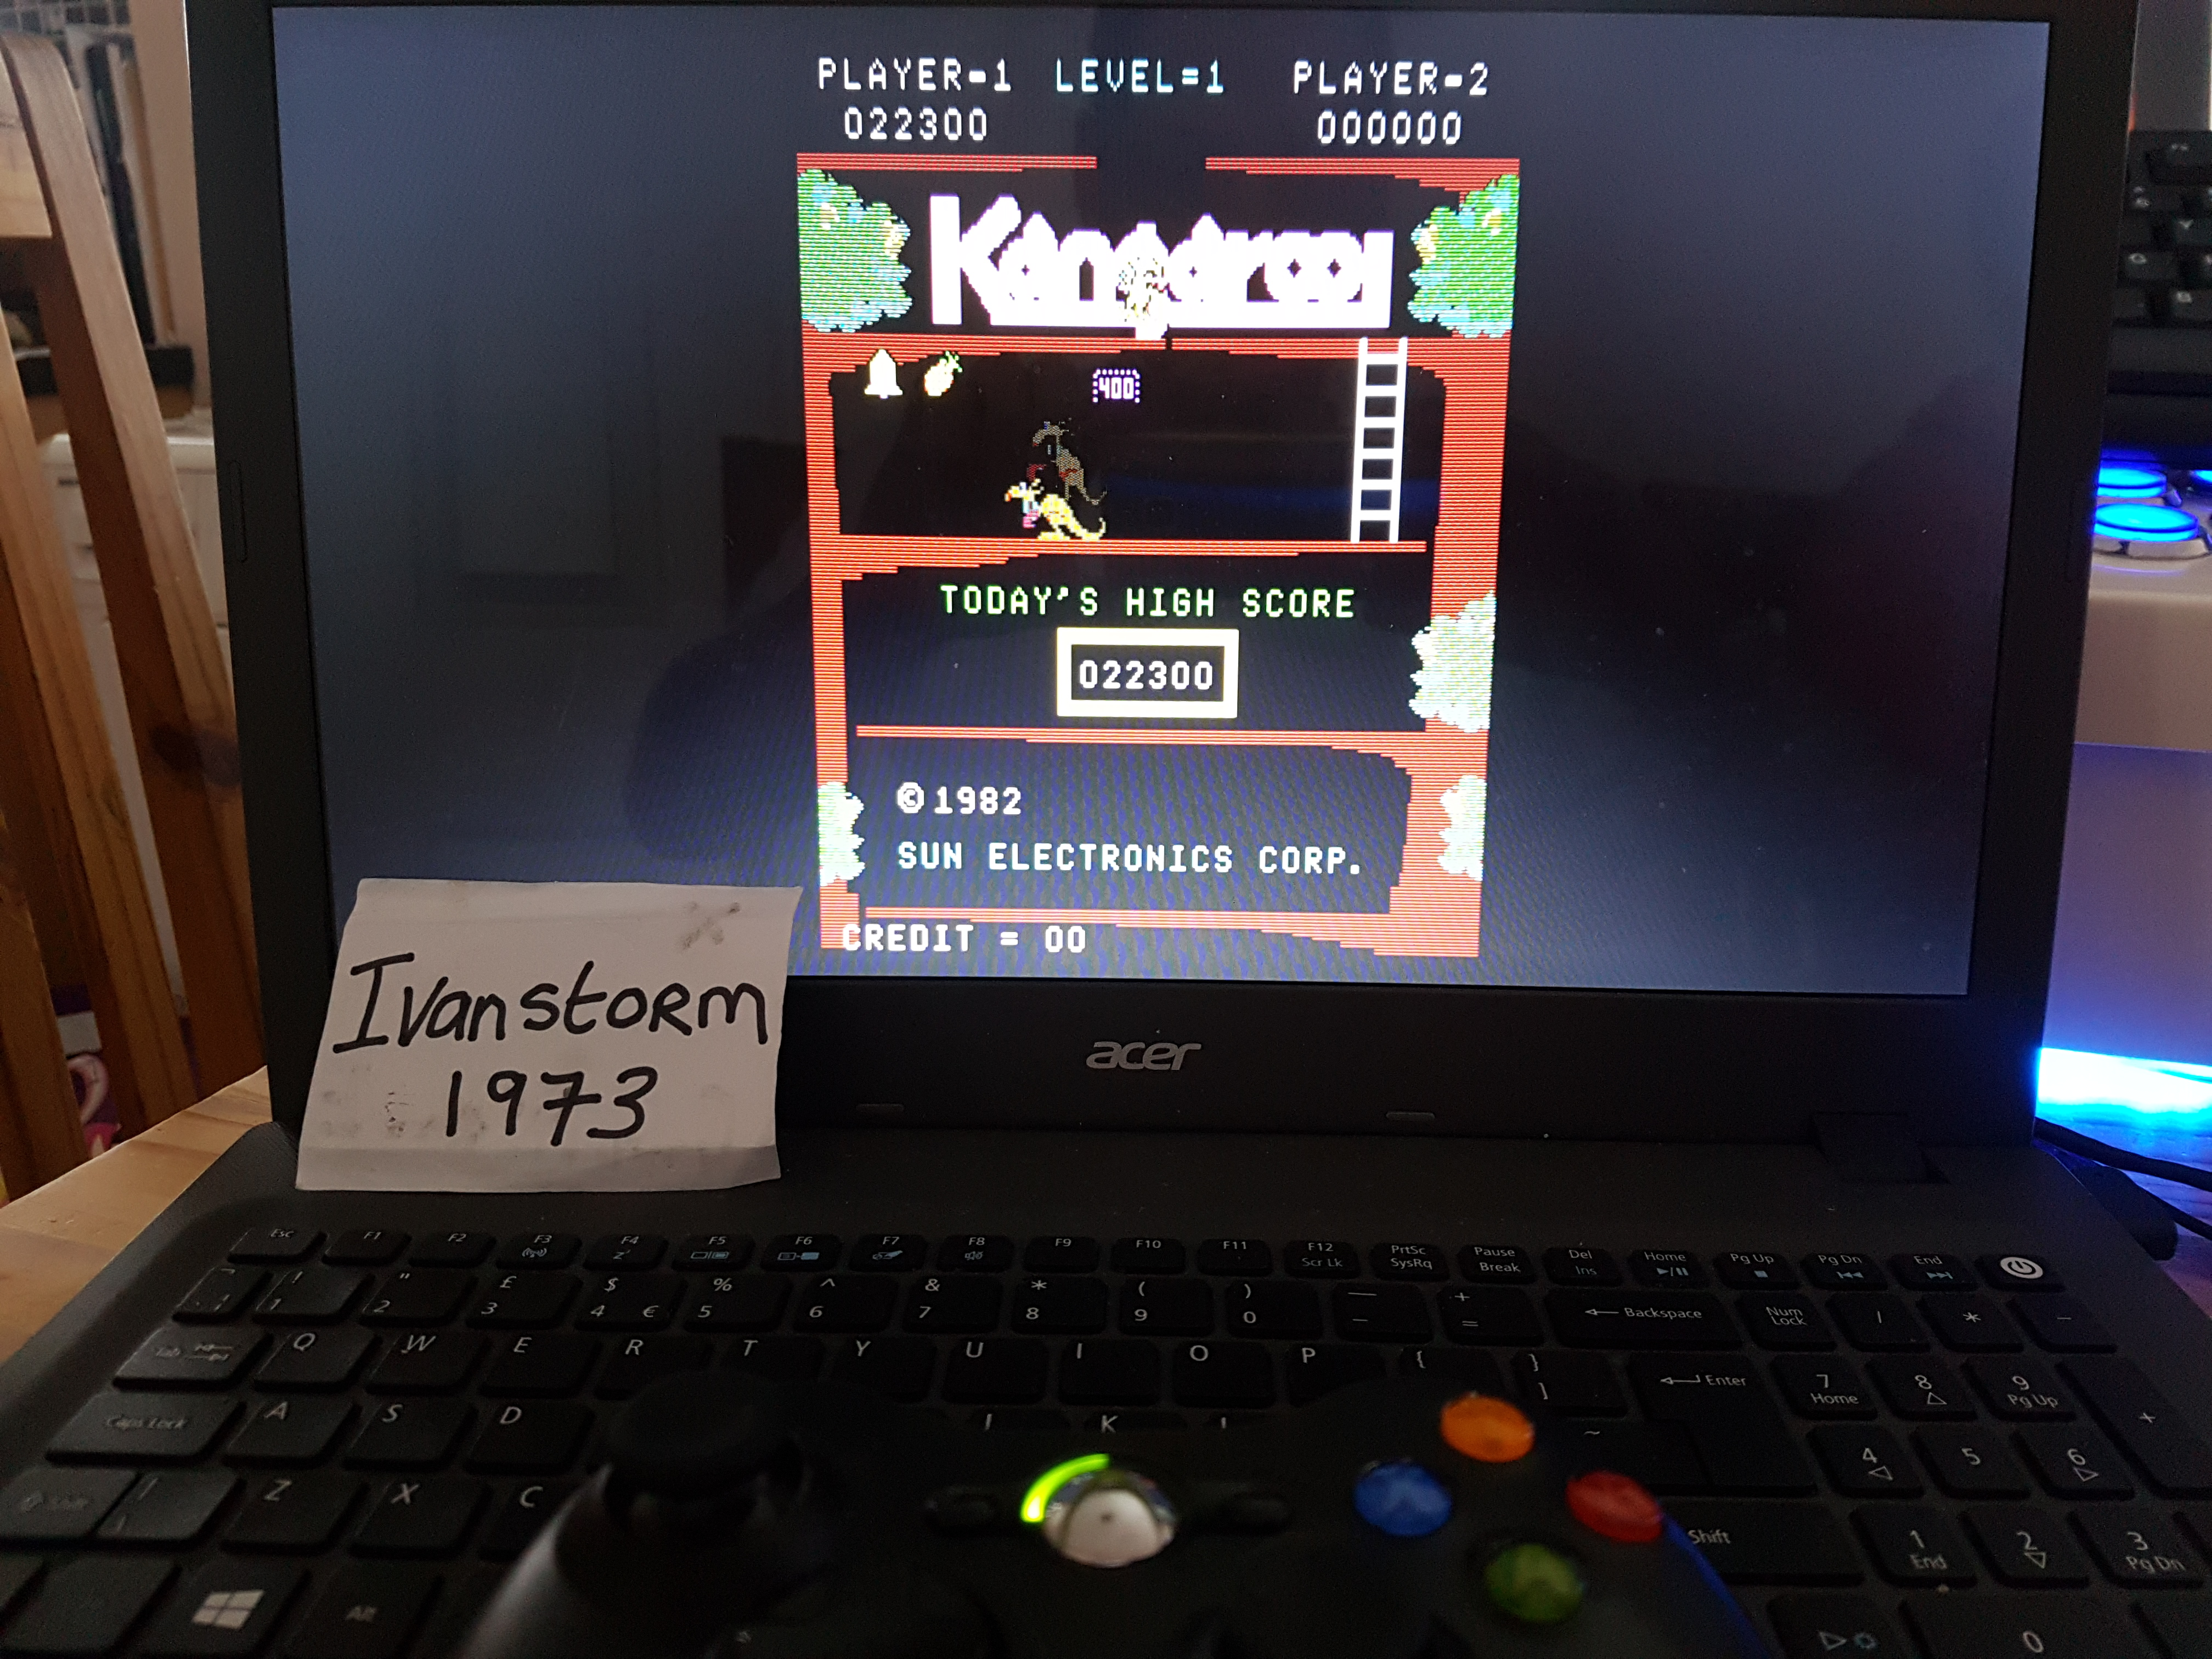 Ivanstorm1973: Kangaroo (Arcade Emulated / M.A.M.E.) 22,300 points on 2018-01-22 07:32:28